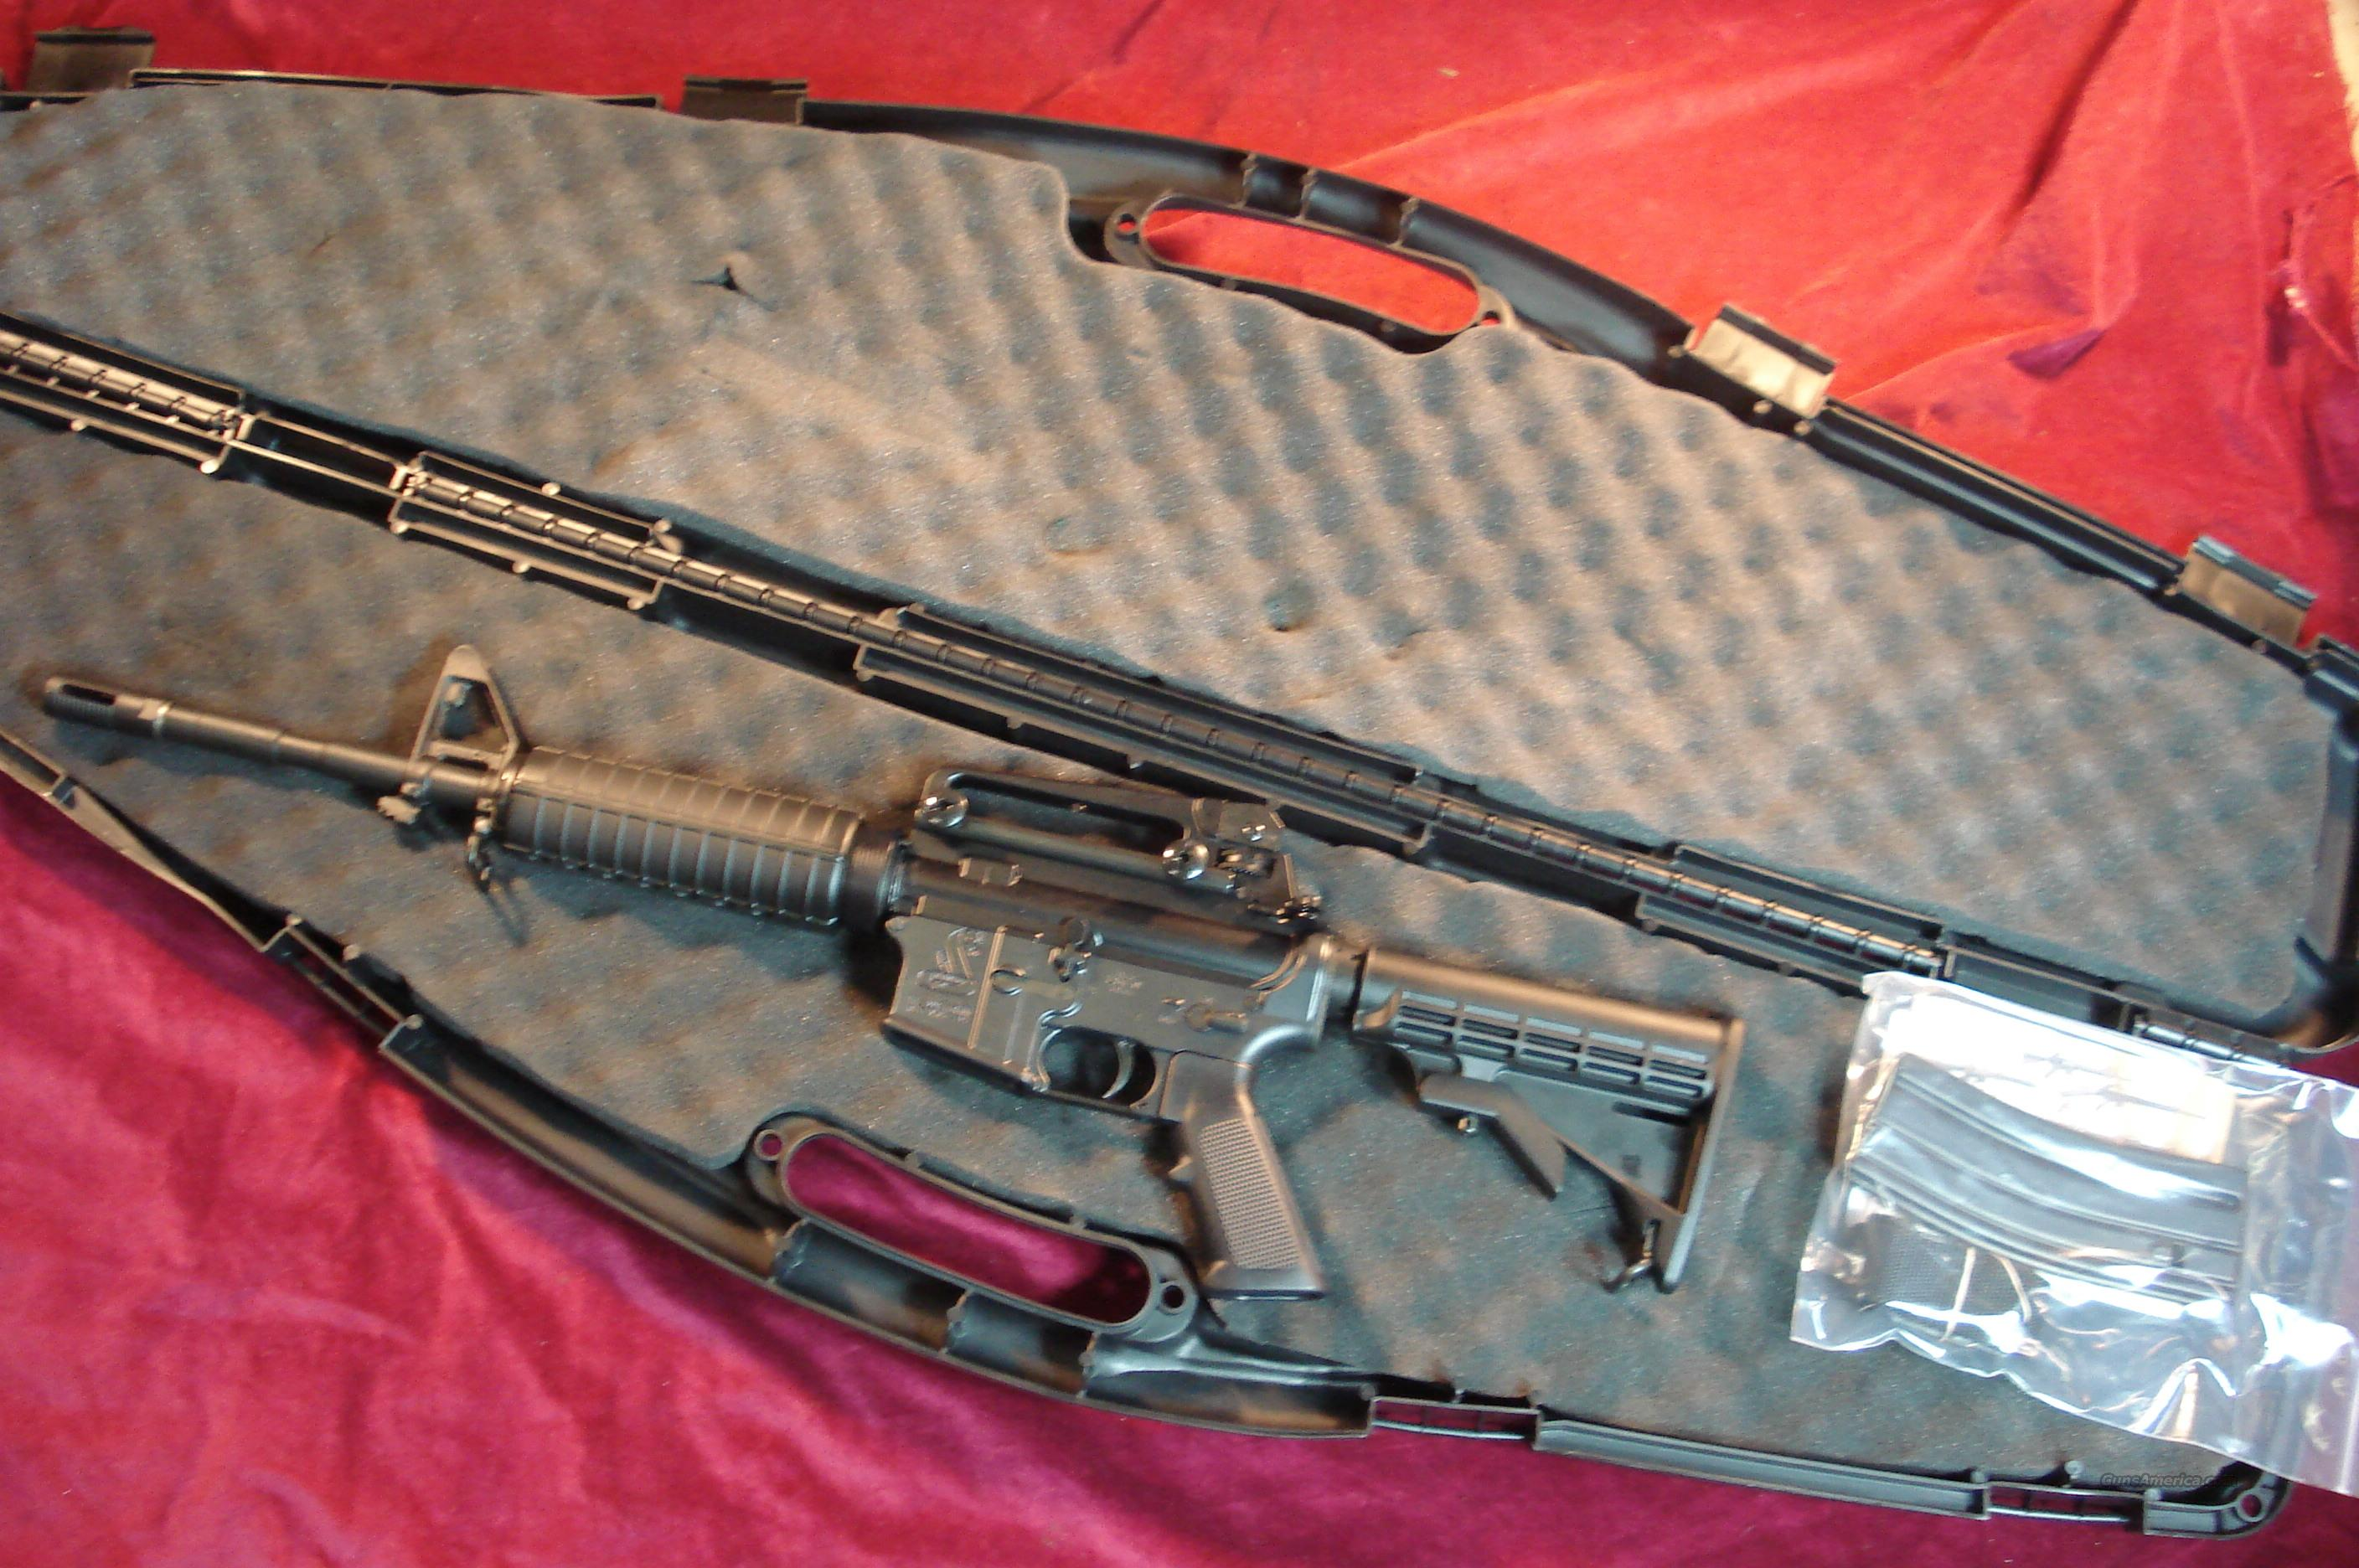 BUSHMASTER M4A3 IZZY CARBINE 5.56/223CAL. NEW ... For Sale